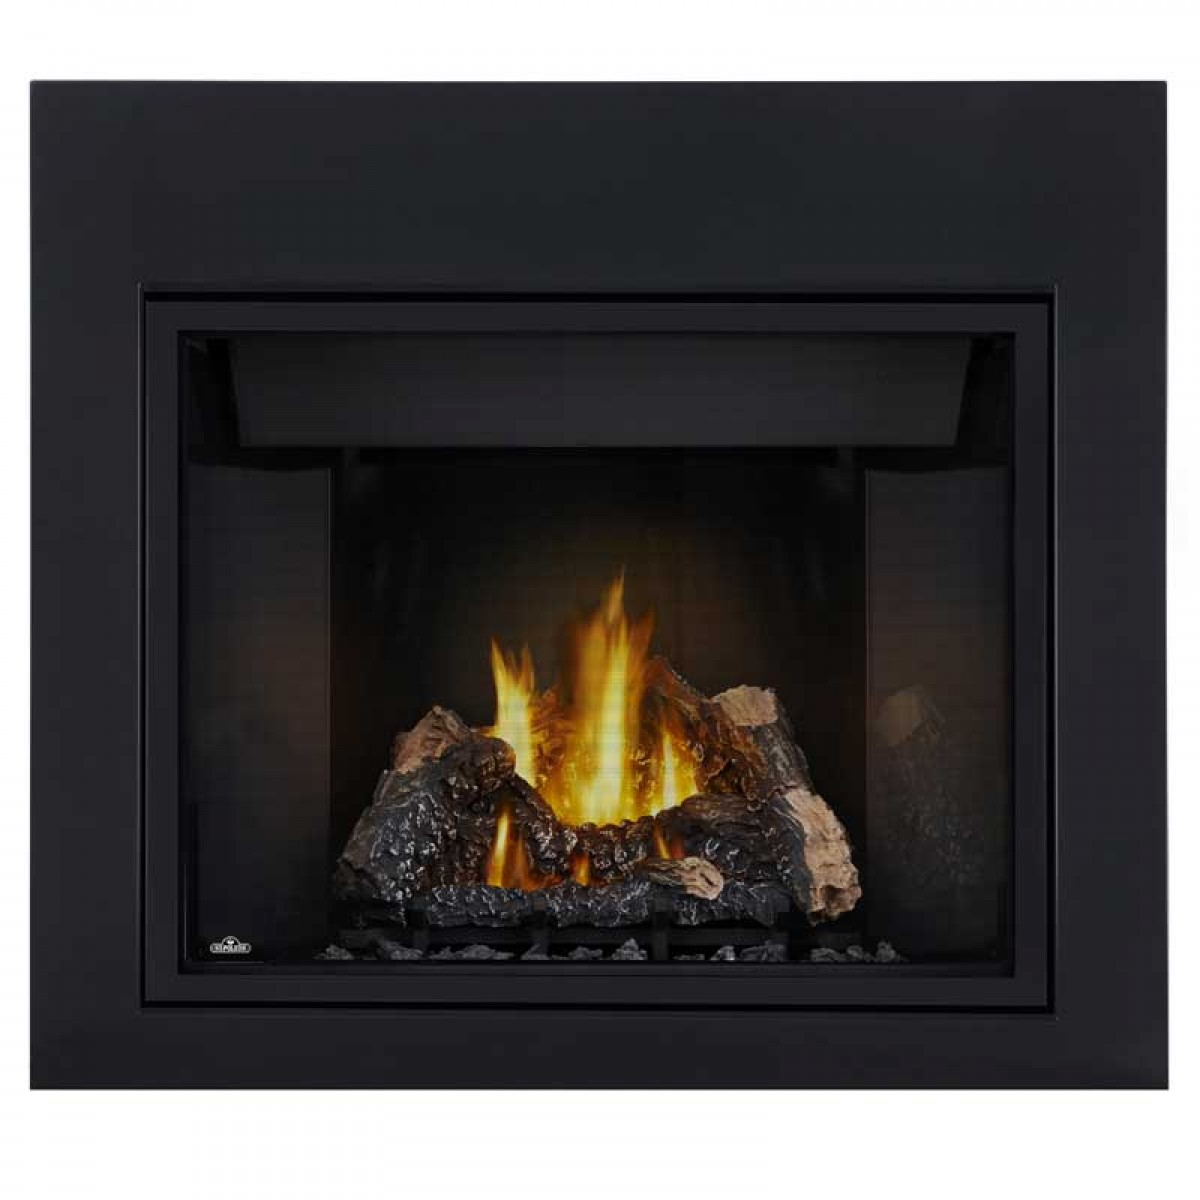 Napoleon Hd35 40 46 High Def Direct Vent Gas Fireplace